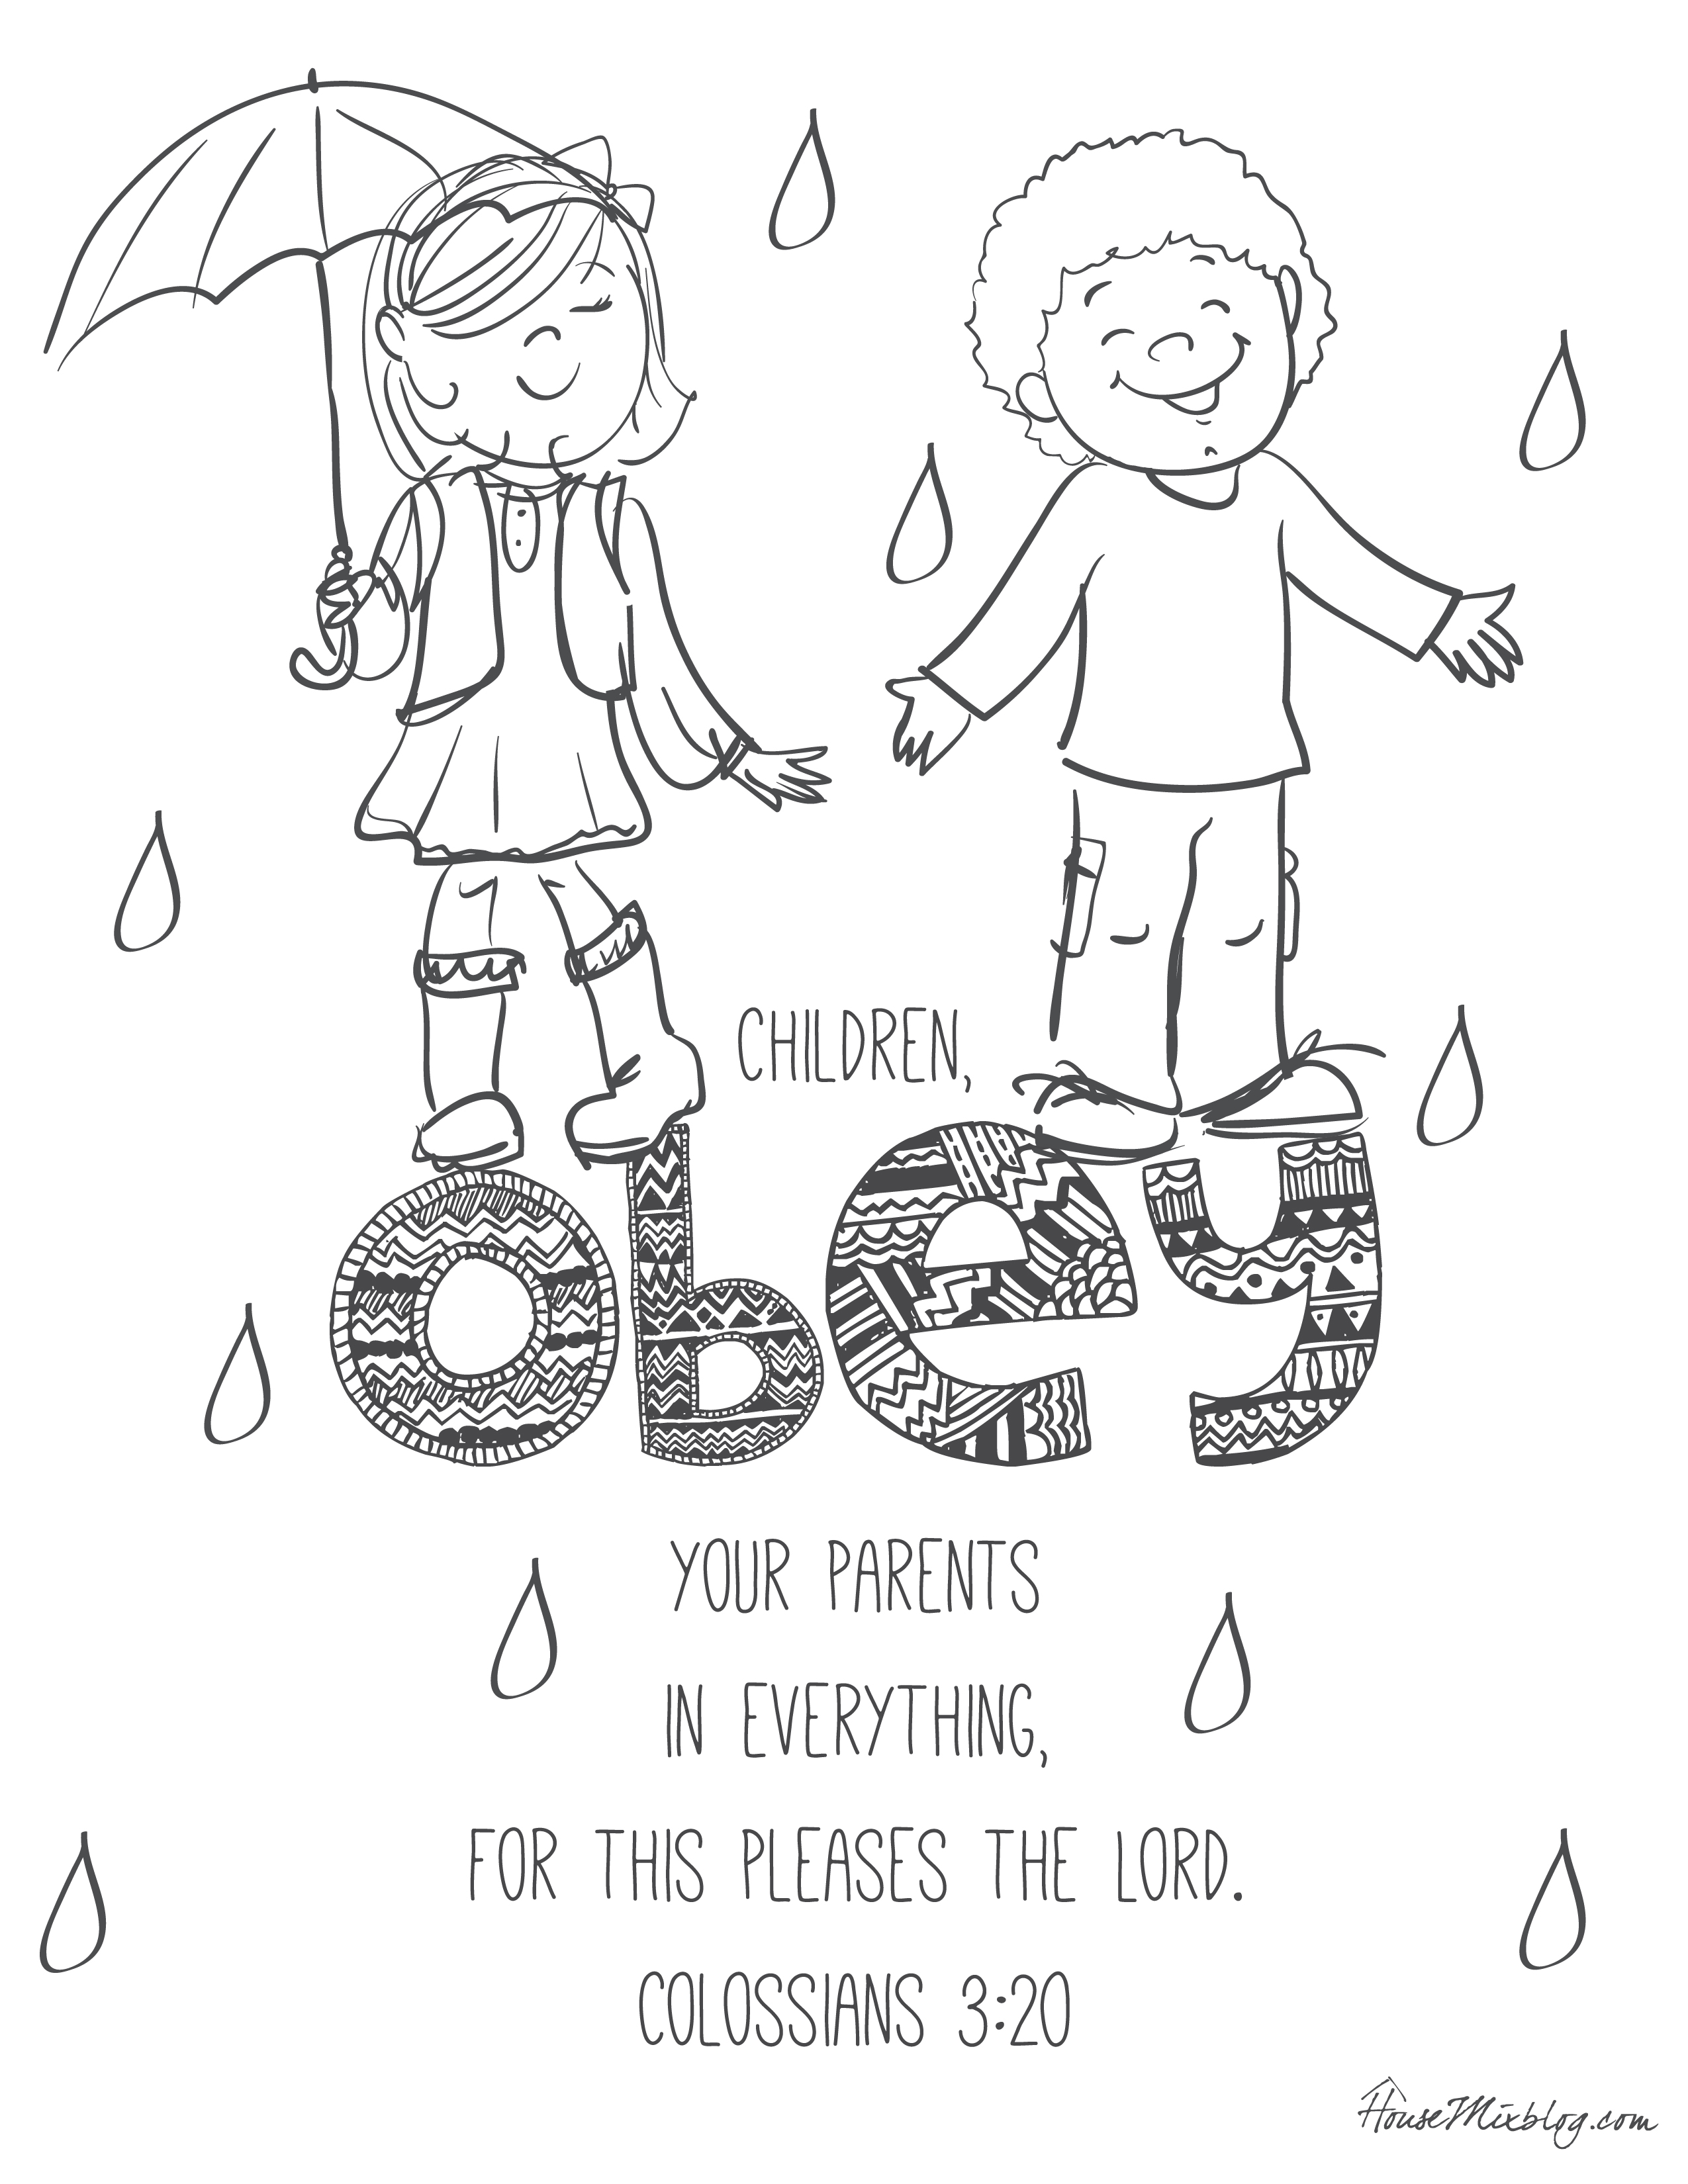 bible verse coloring sheets must have free bible verse printable coloring sheets verse coloring sheets bible 1 1